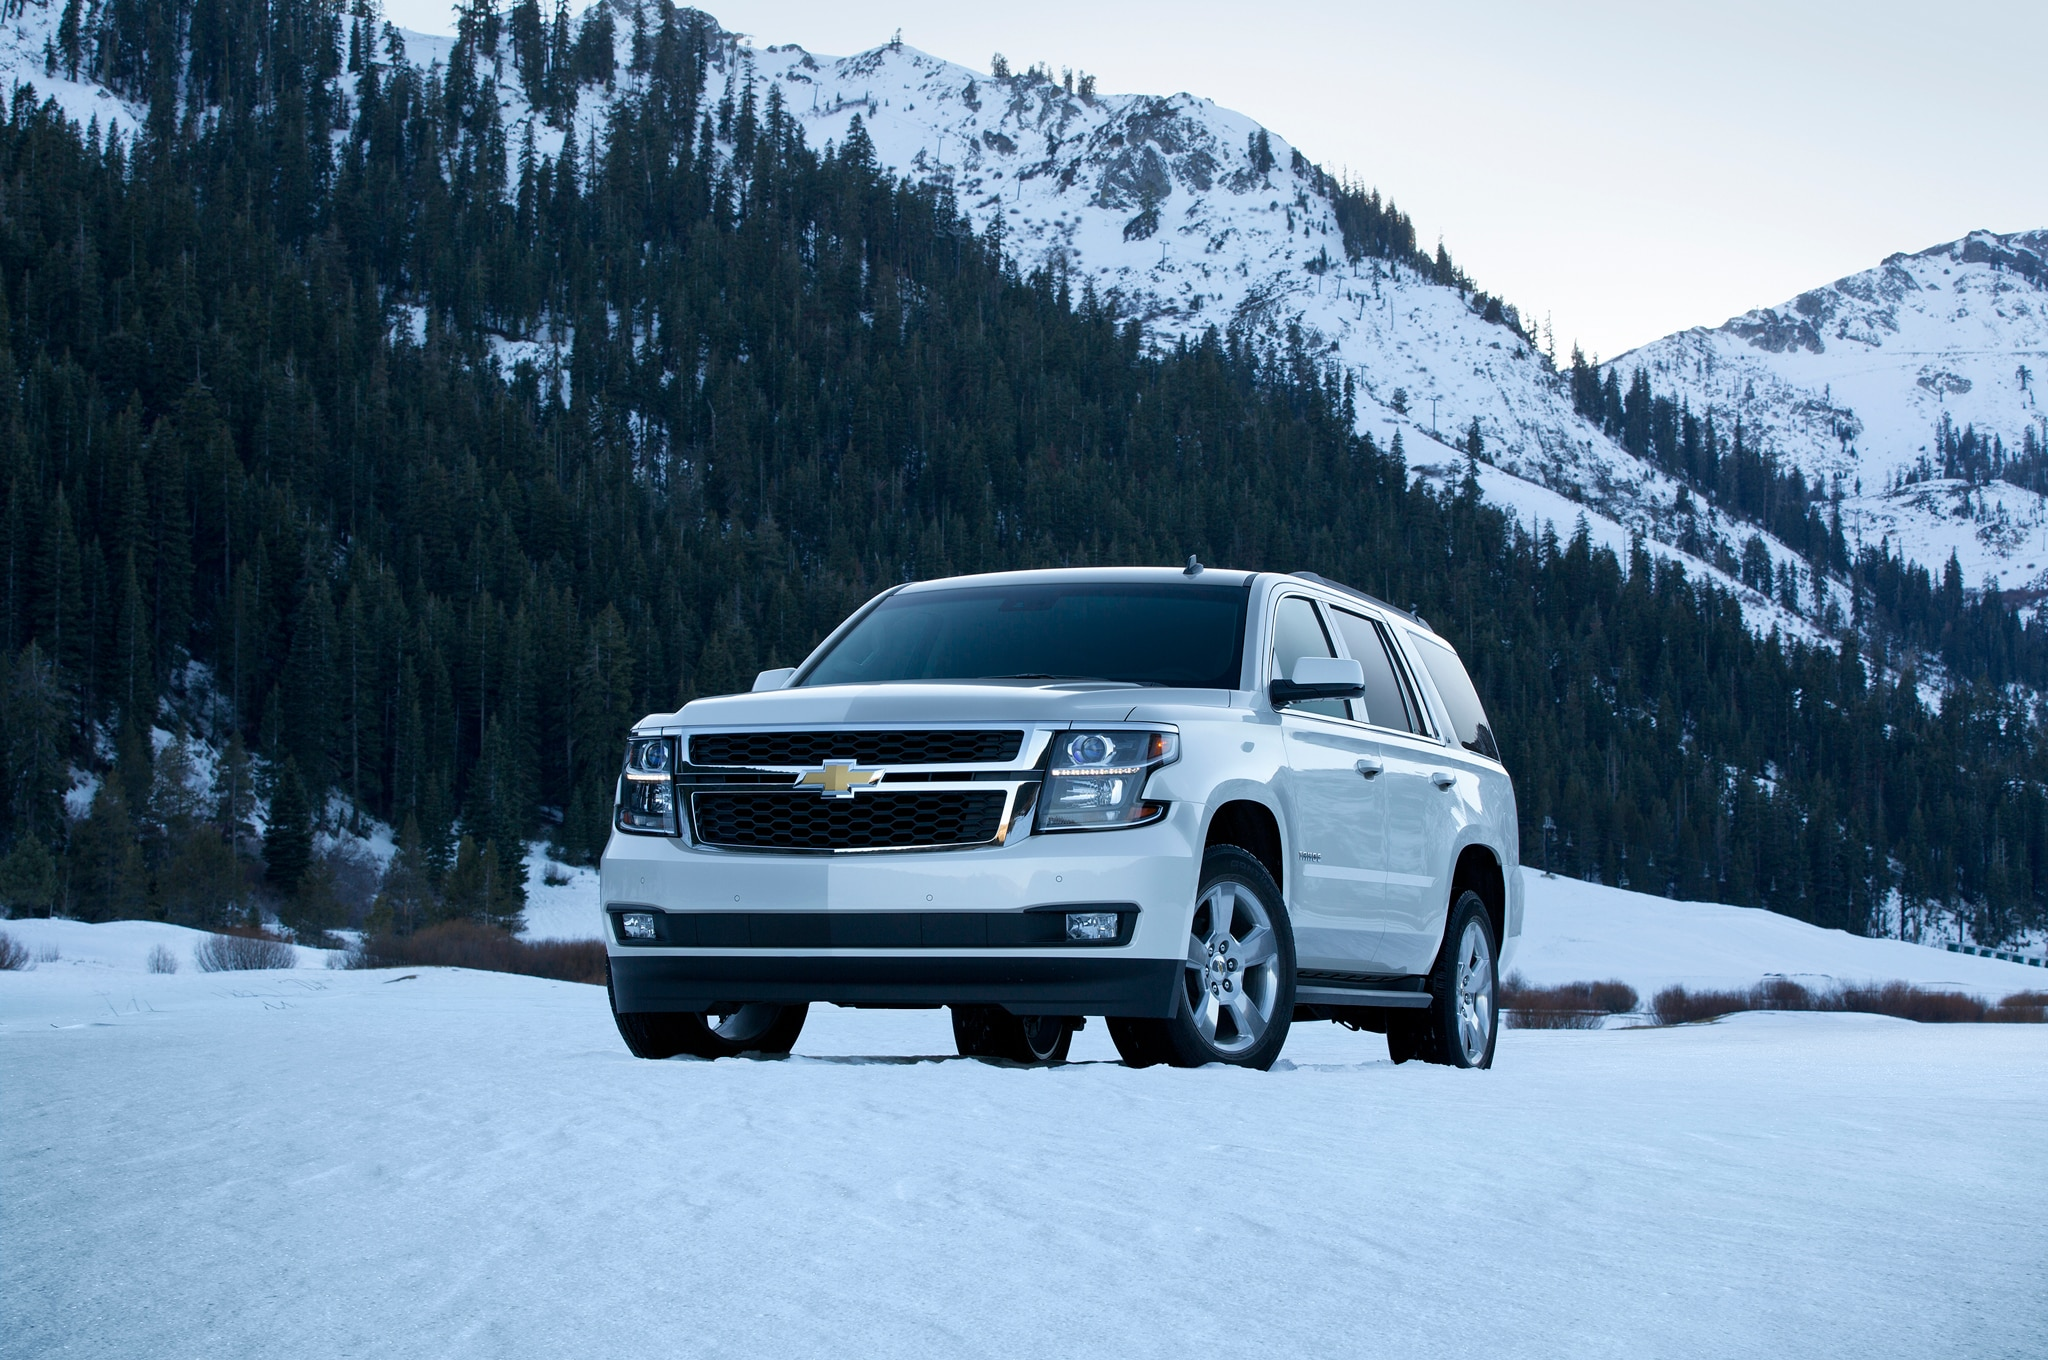 2015 Chevrolet Tahoe and Suburban Review - Automobile Magazine